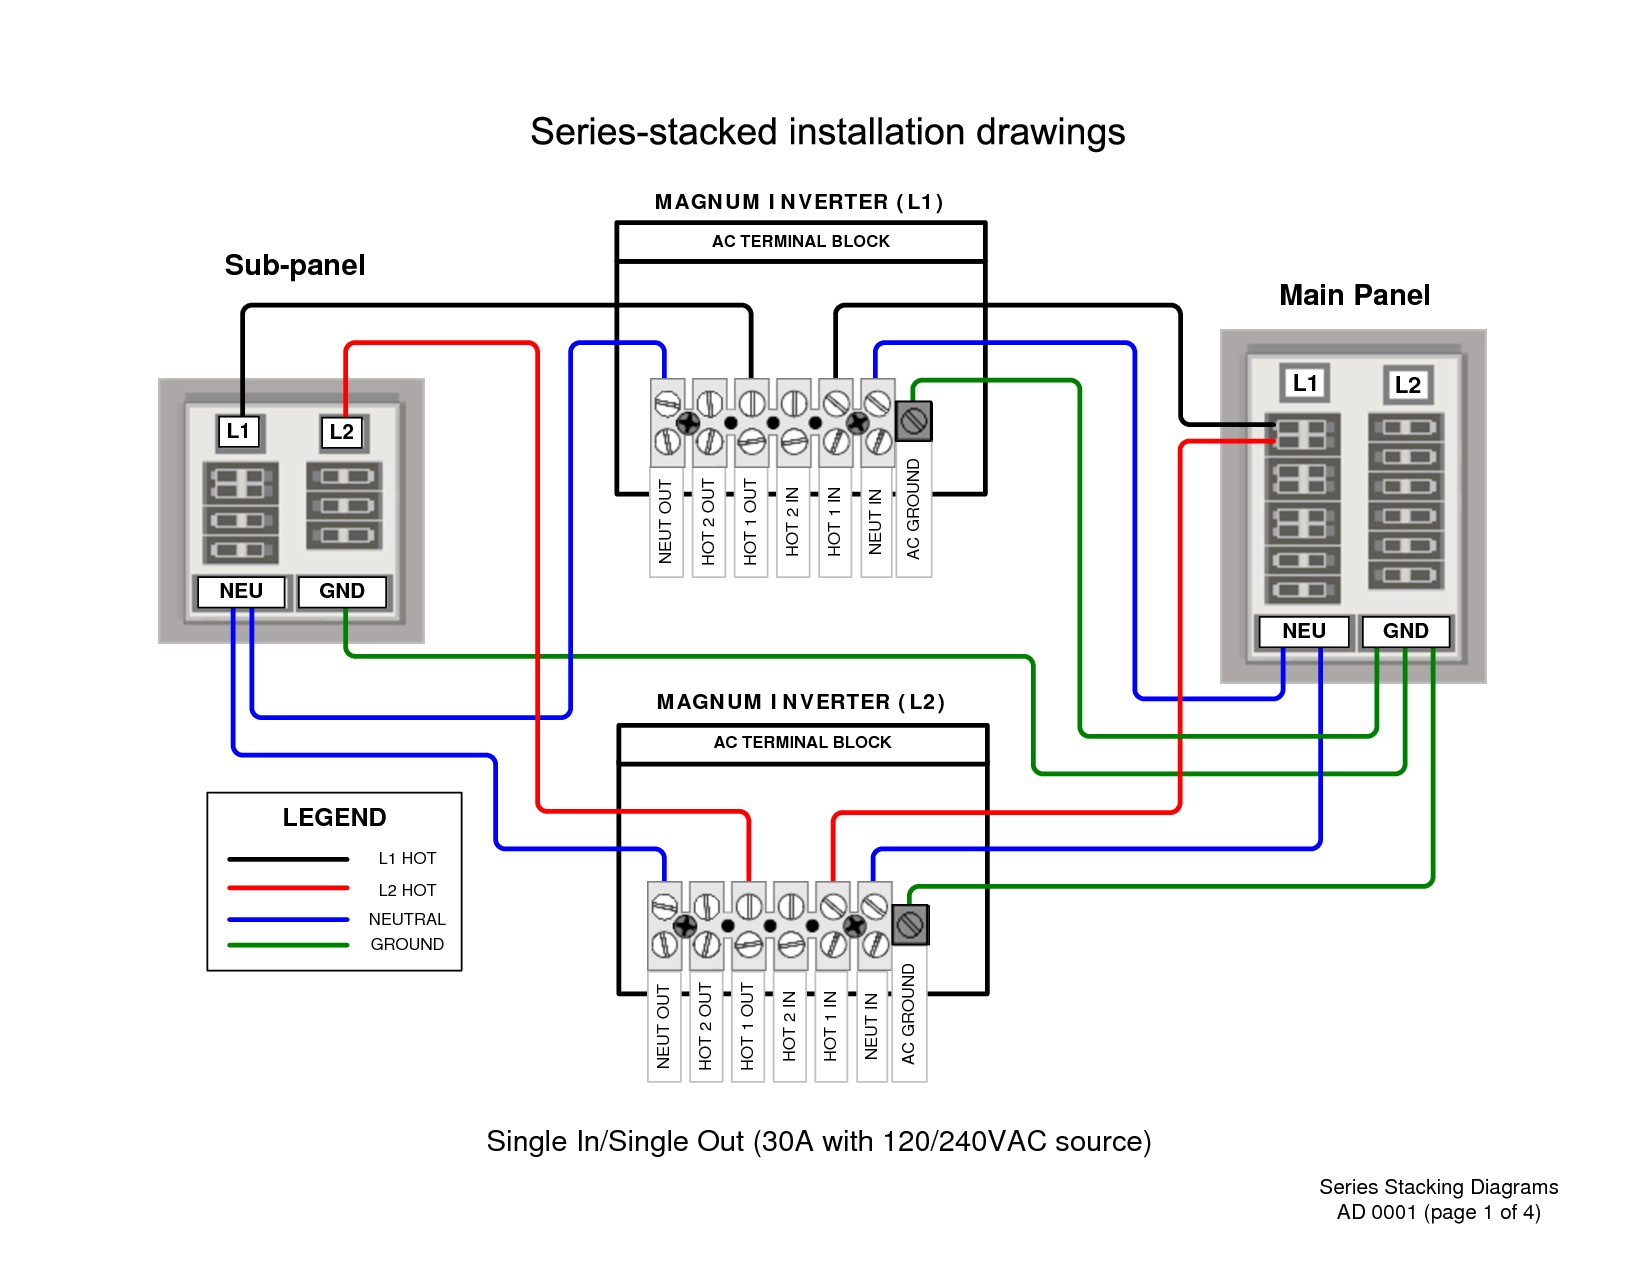 125 Amp Sub Panel Wiring Diagram | Wiring Library - 125 Amp Sub Panel Wiring Diagram